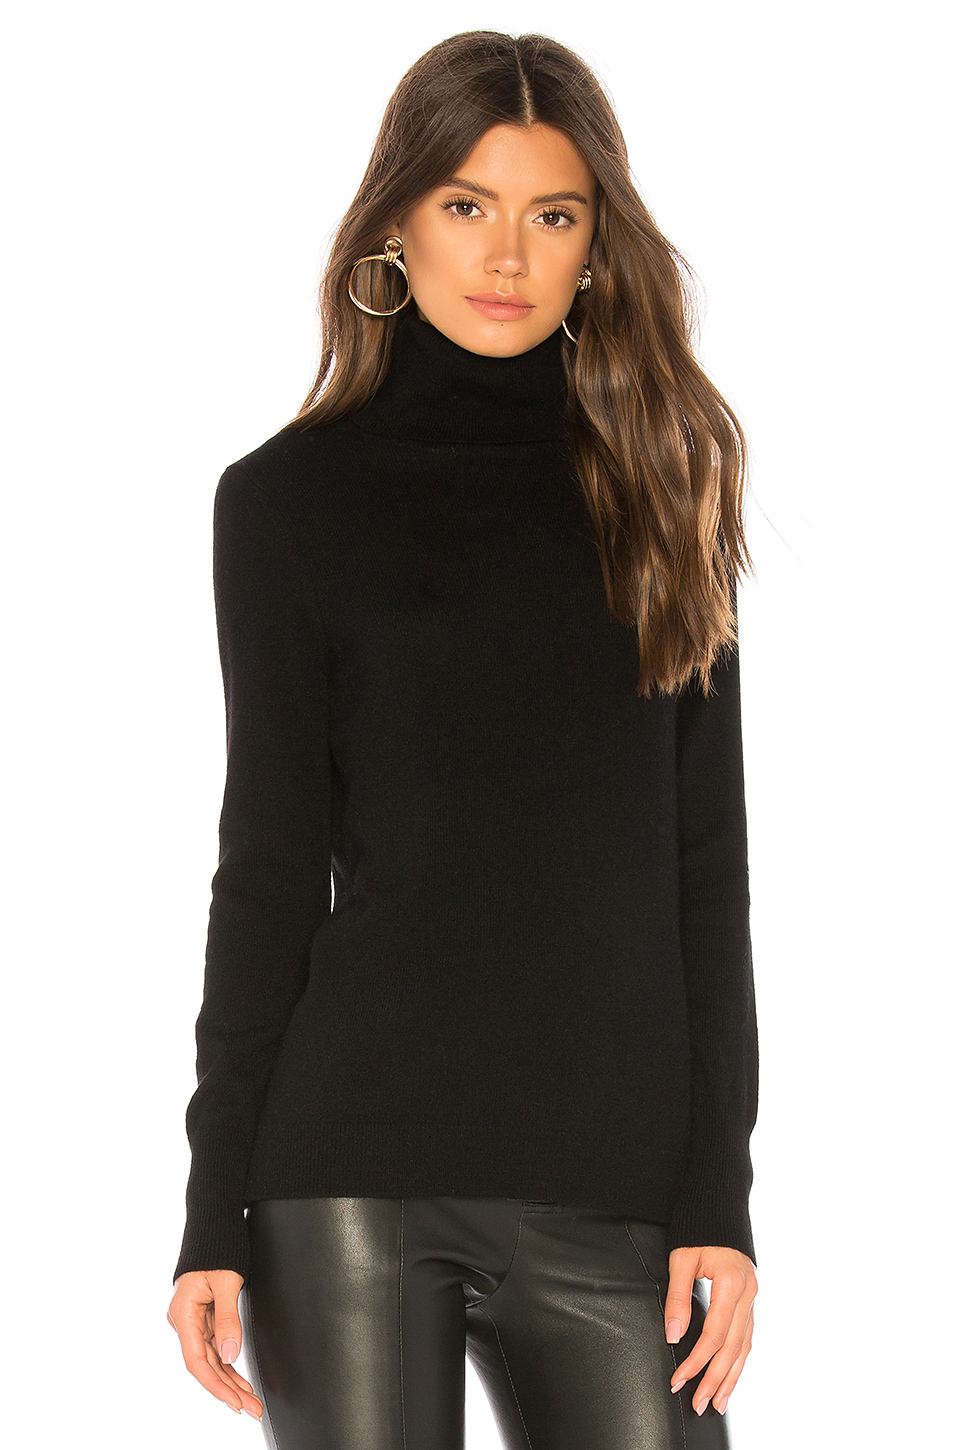 White + Warren Essential Turtleneck Sweater